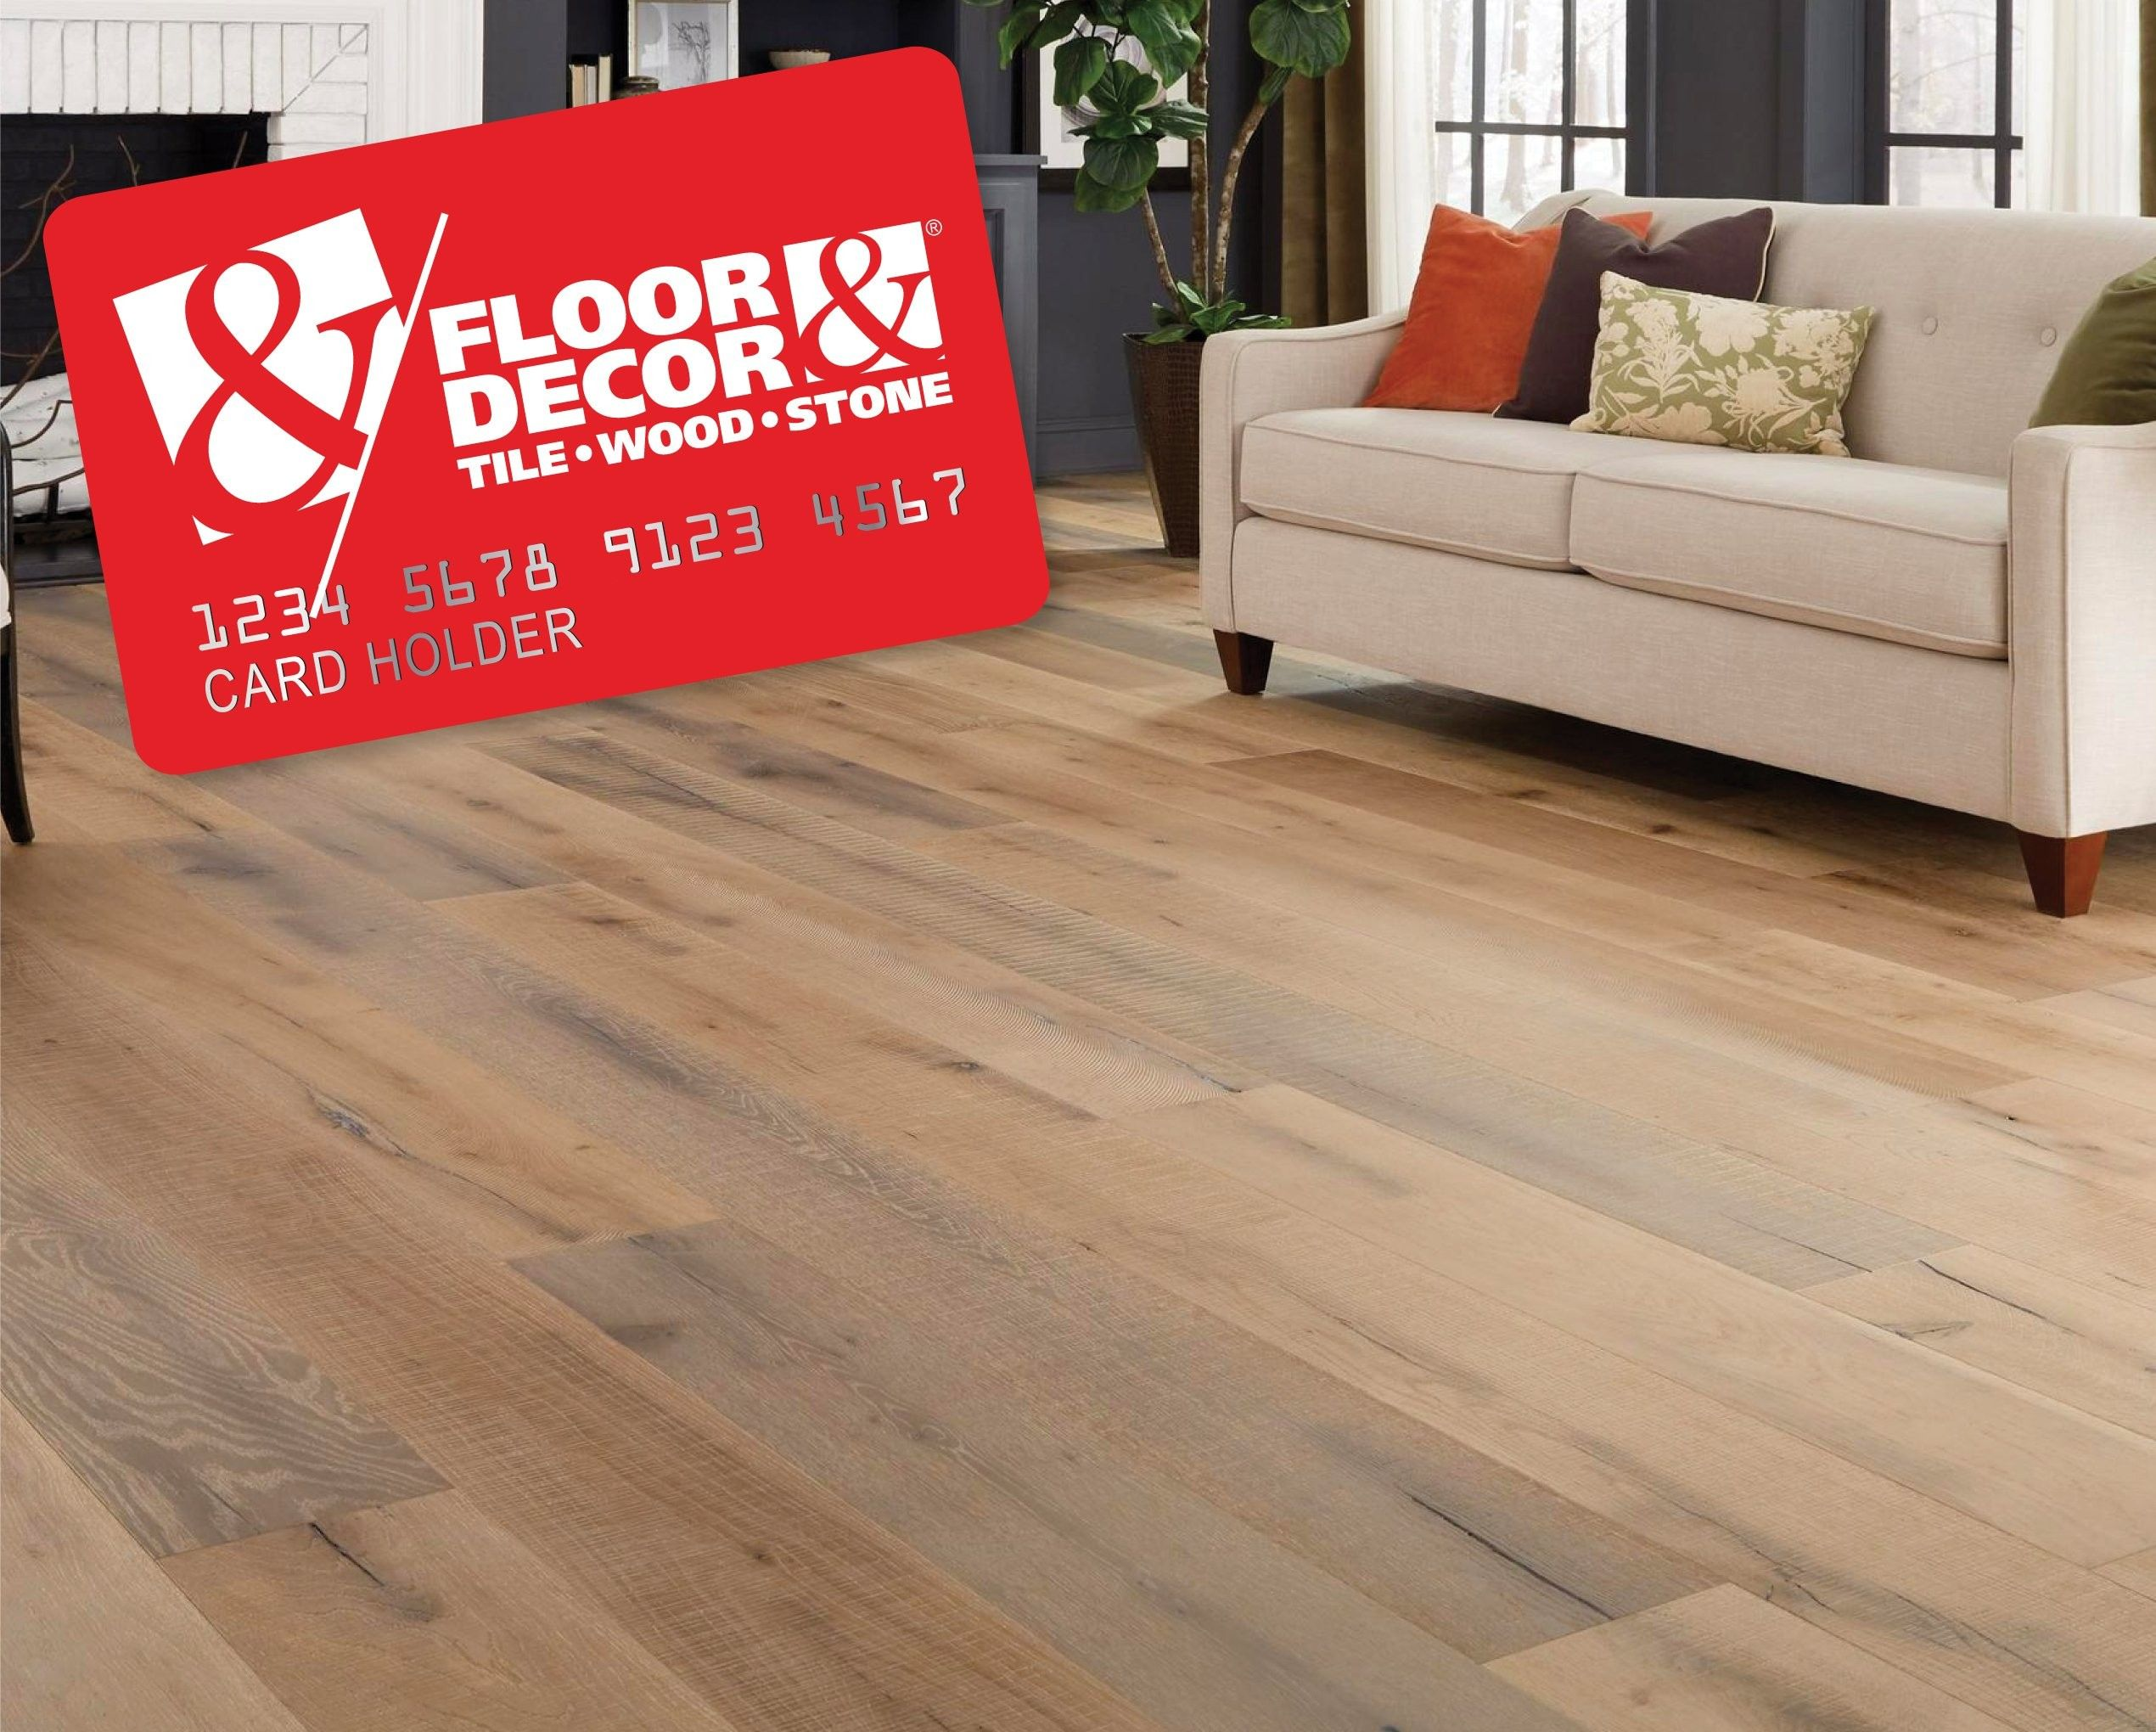 Floor Decor Credit Card From 4 11 2019